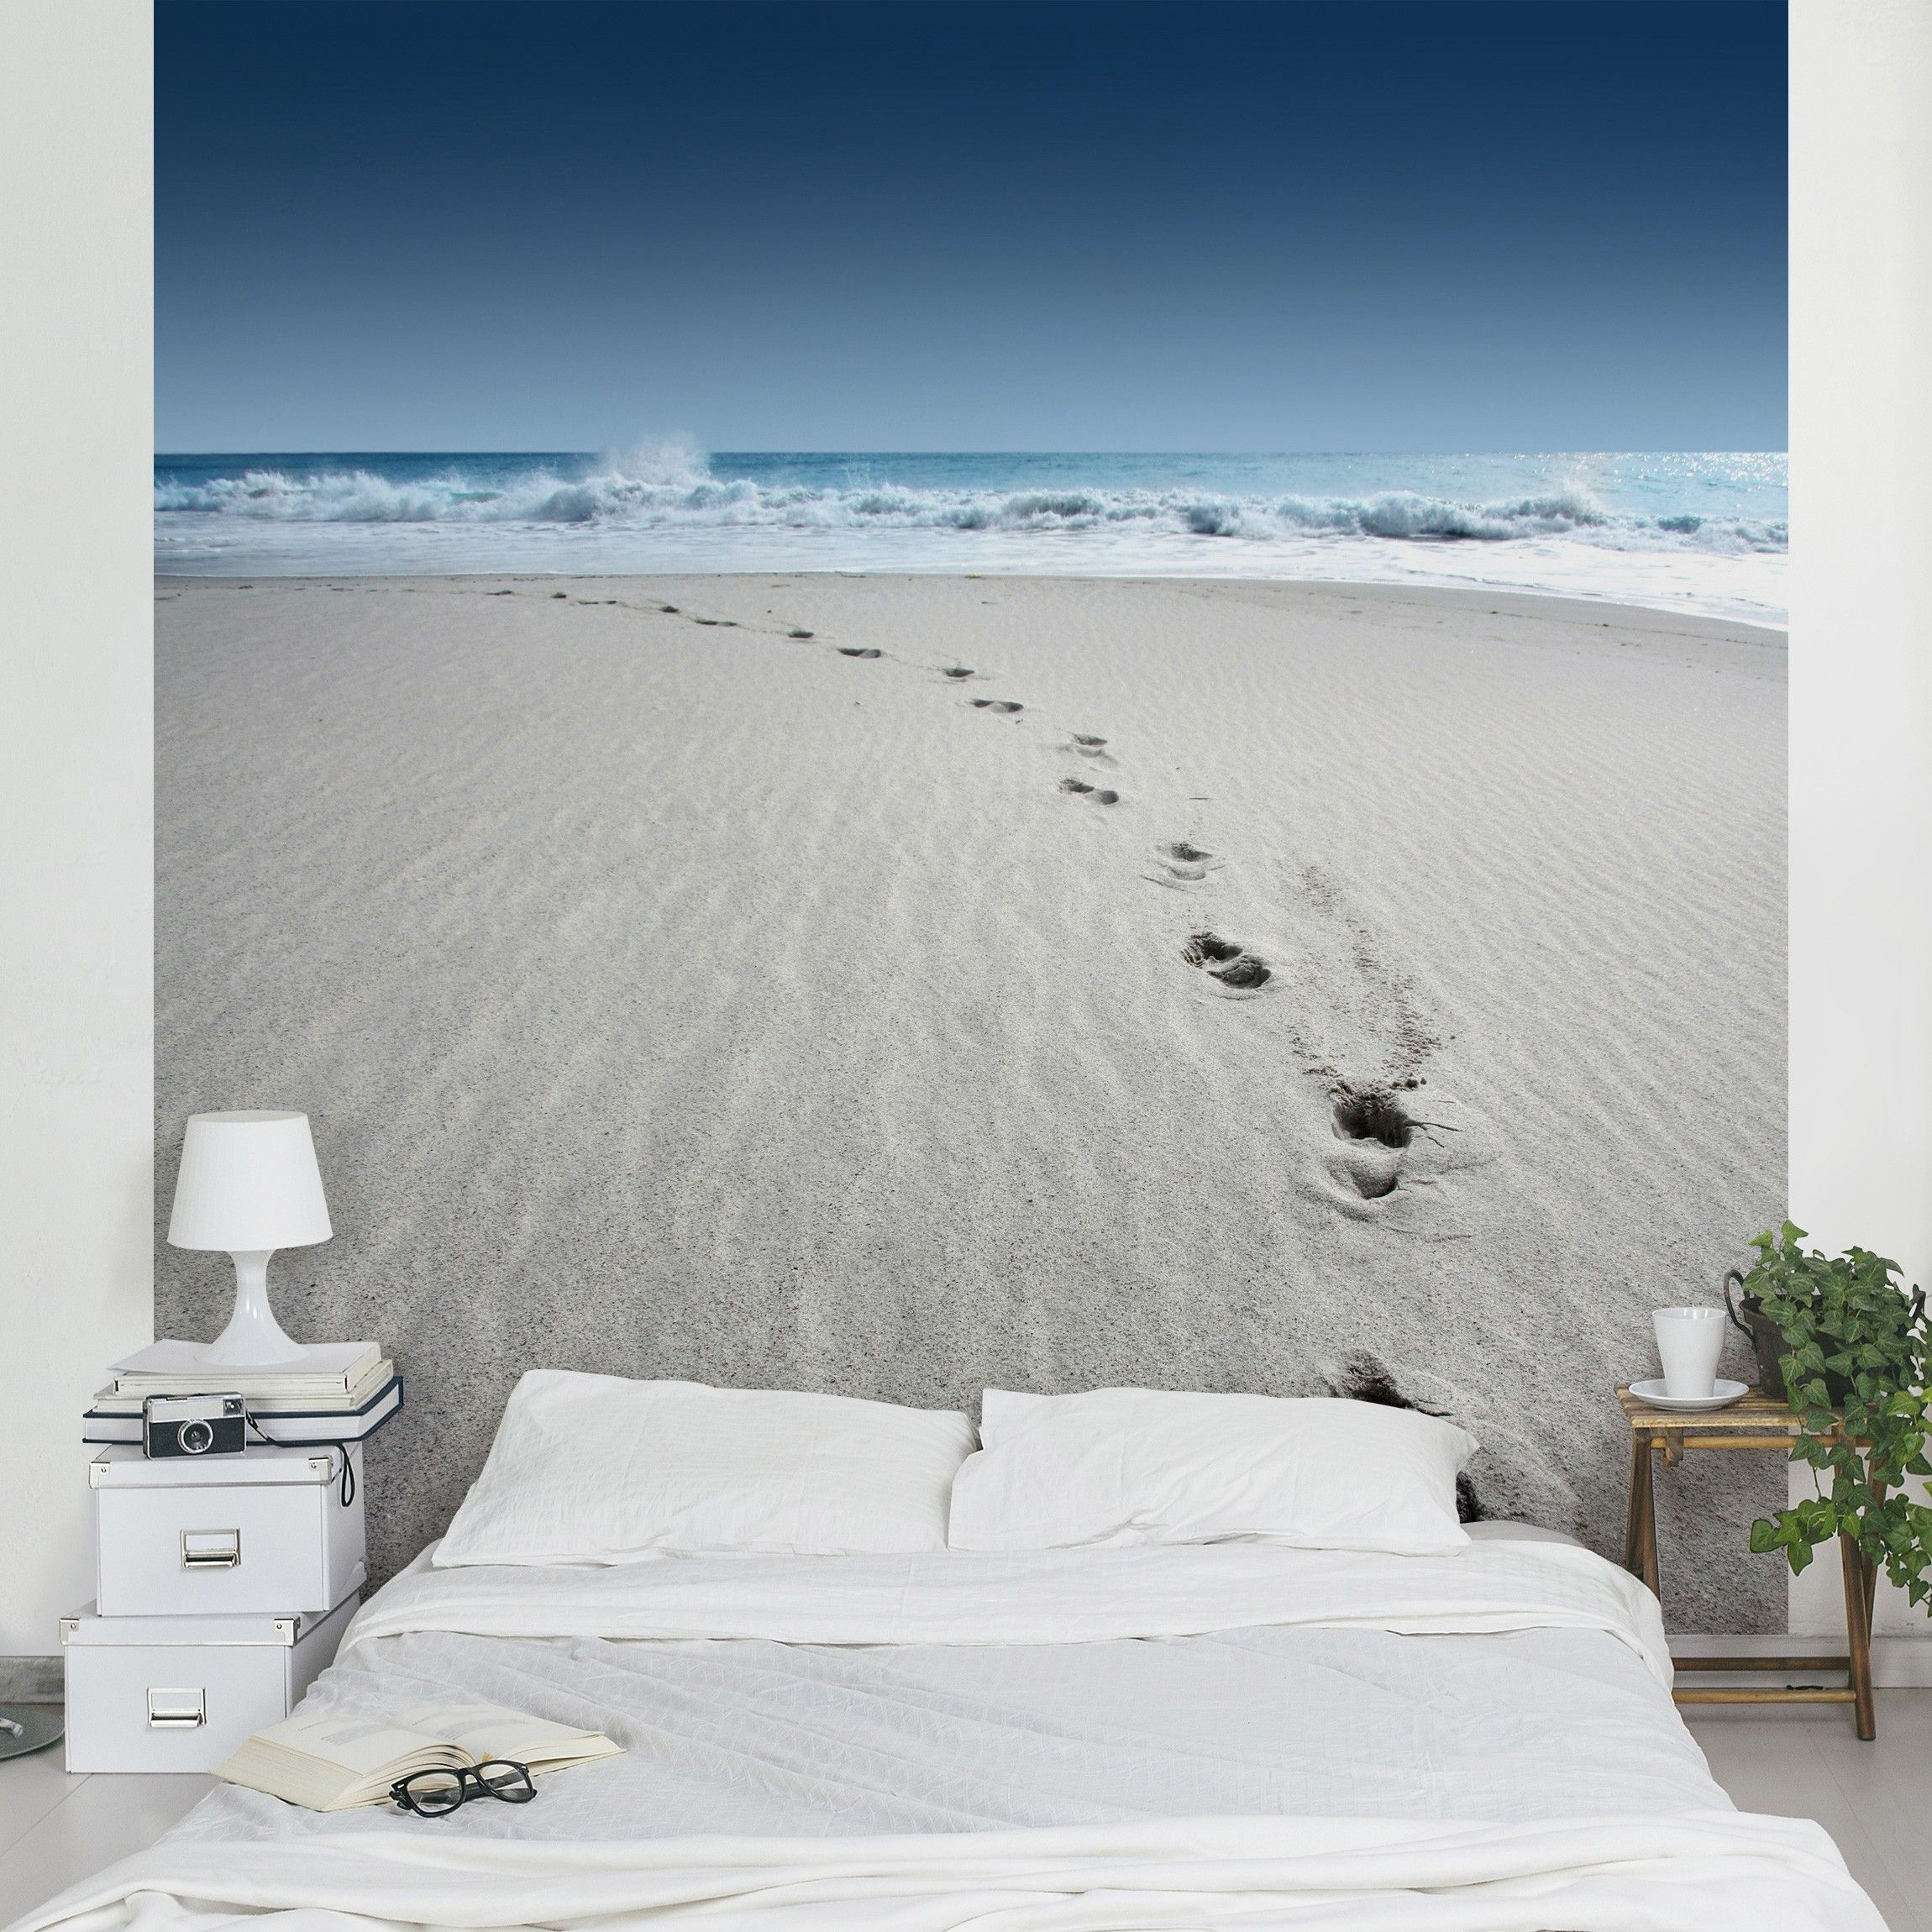 29 95 vliestapete spuren im sand fototapete quadrat mhh pinterest fototapete. Black Bedroom Furniture Sets. Home Design Ideas